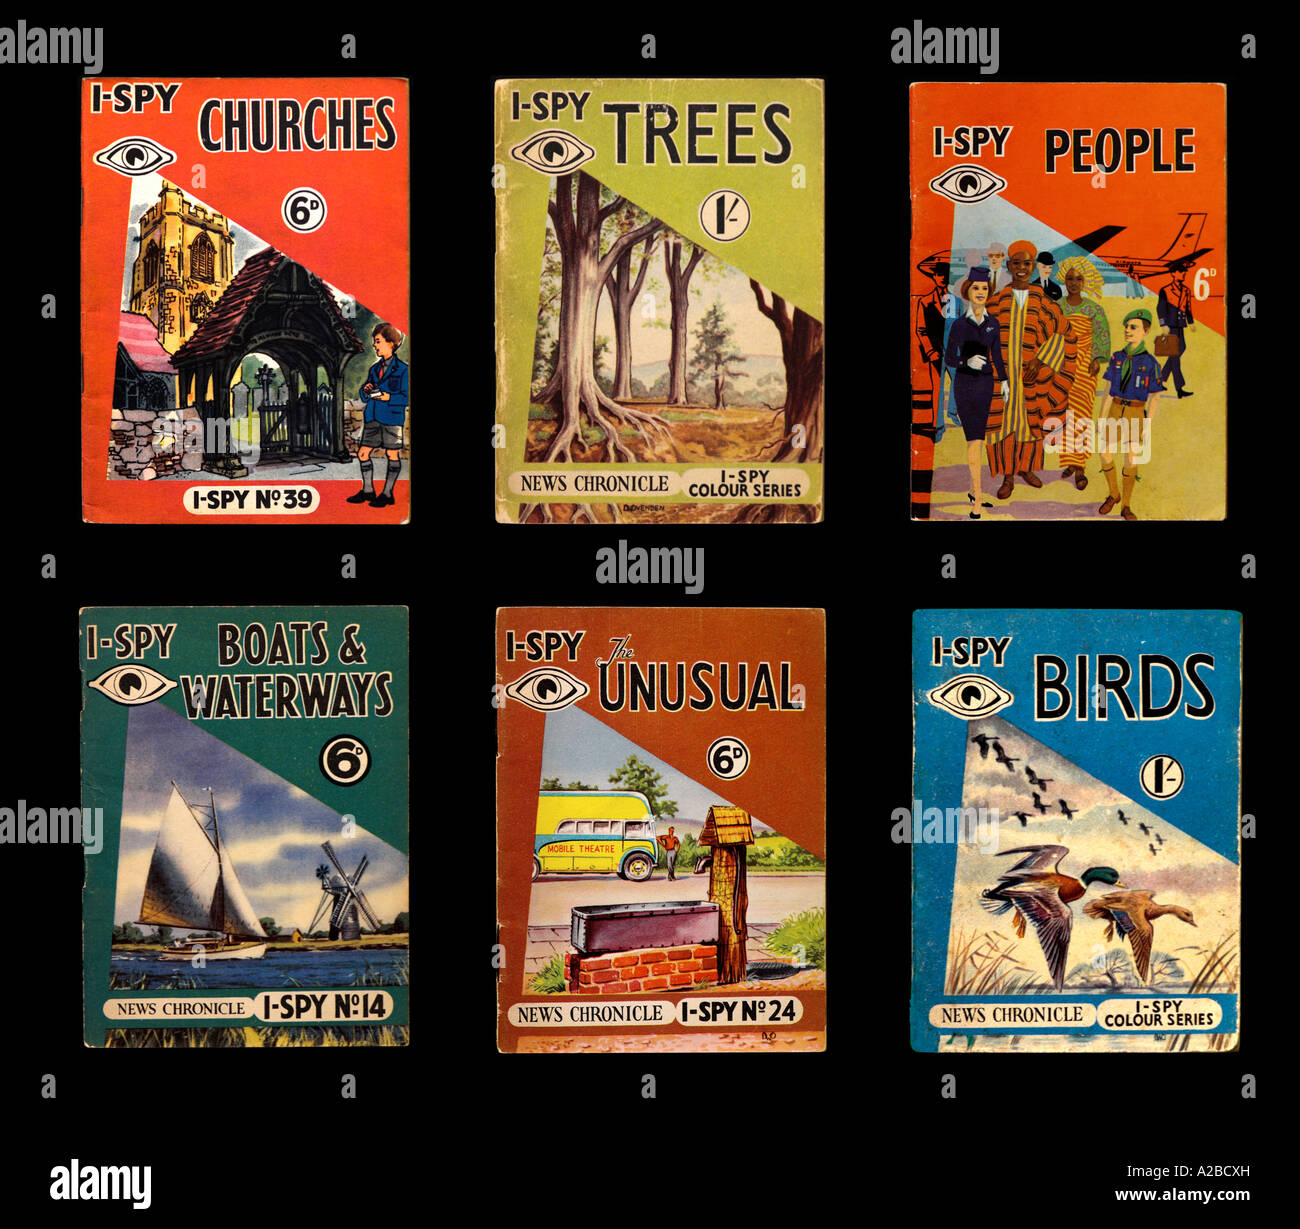 I-Spy Books 1950s 1960s For Editorial Use only - Stock Image